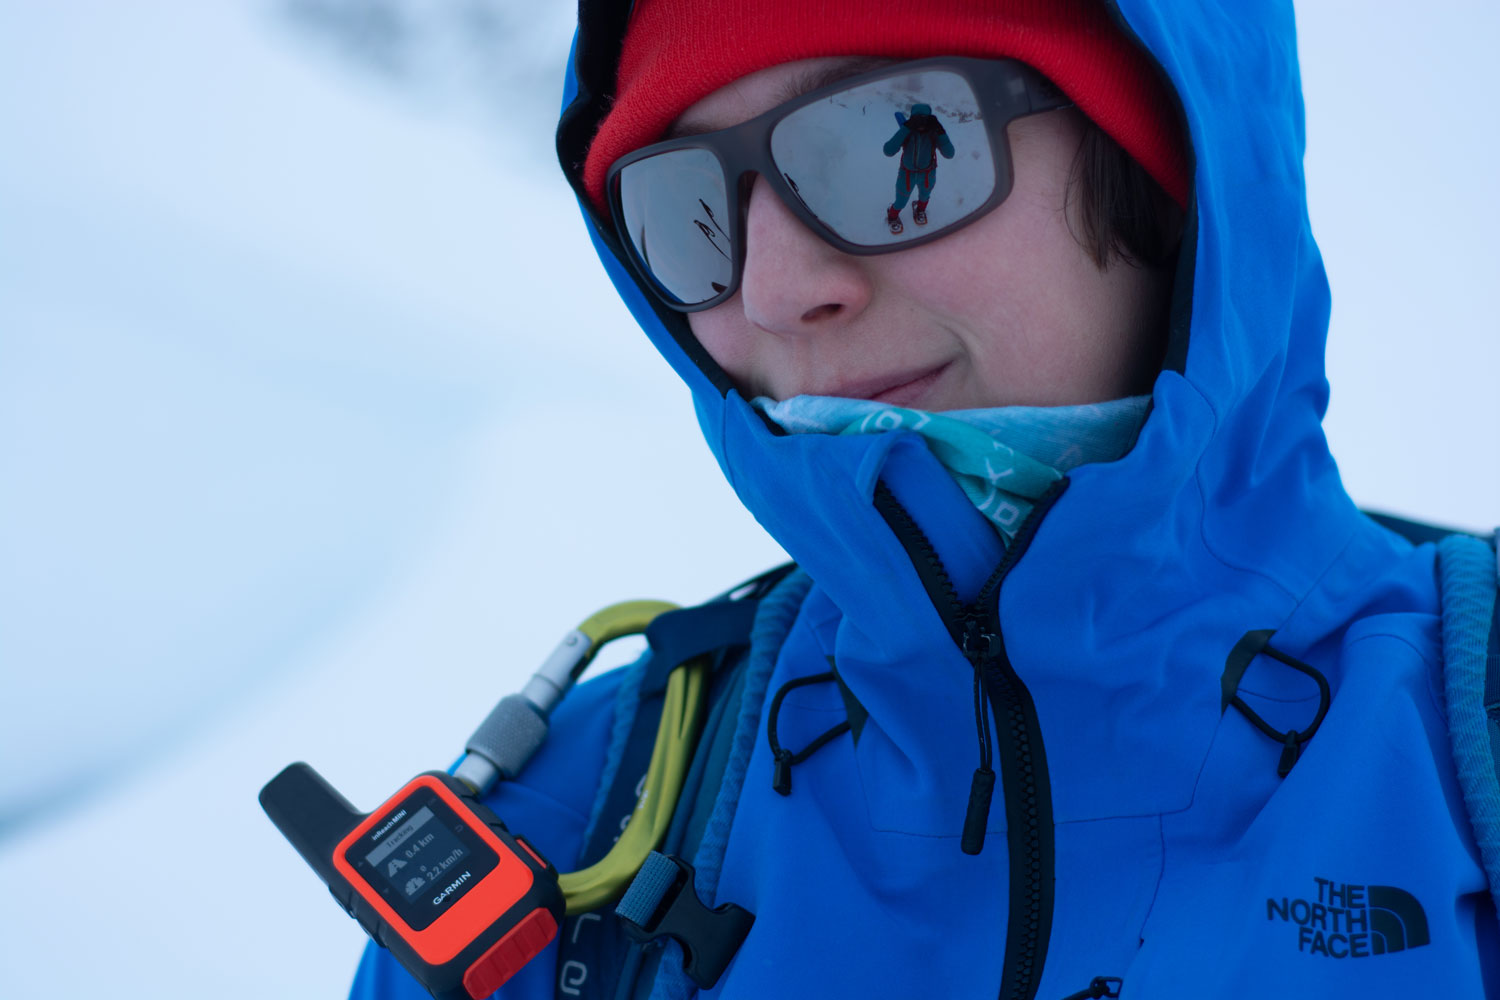 garmin-inreach-mini-test-erfahrung-munichmountaingirls-3